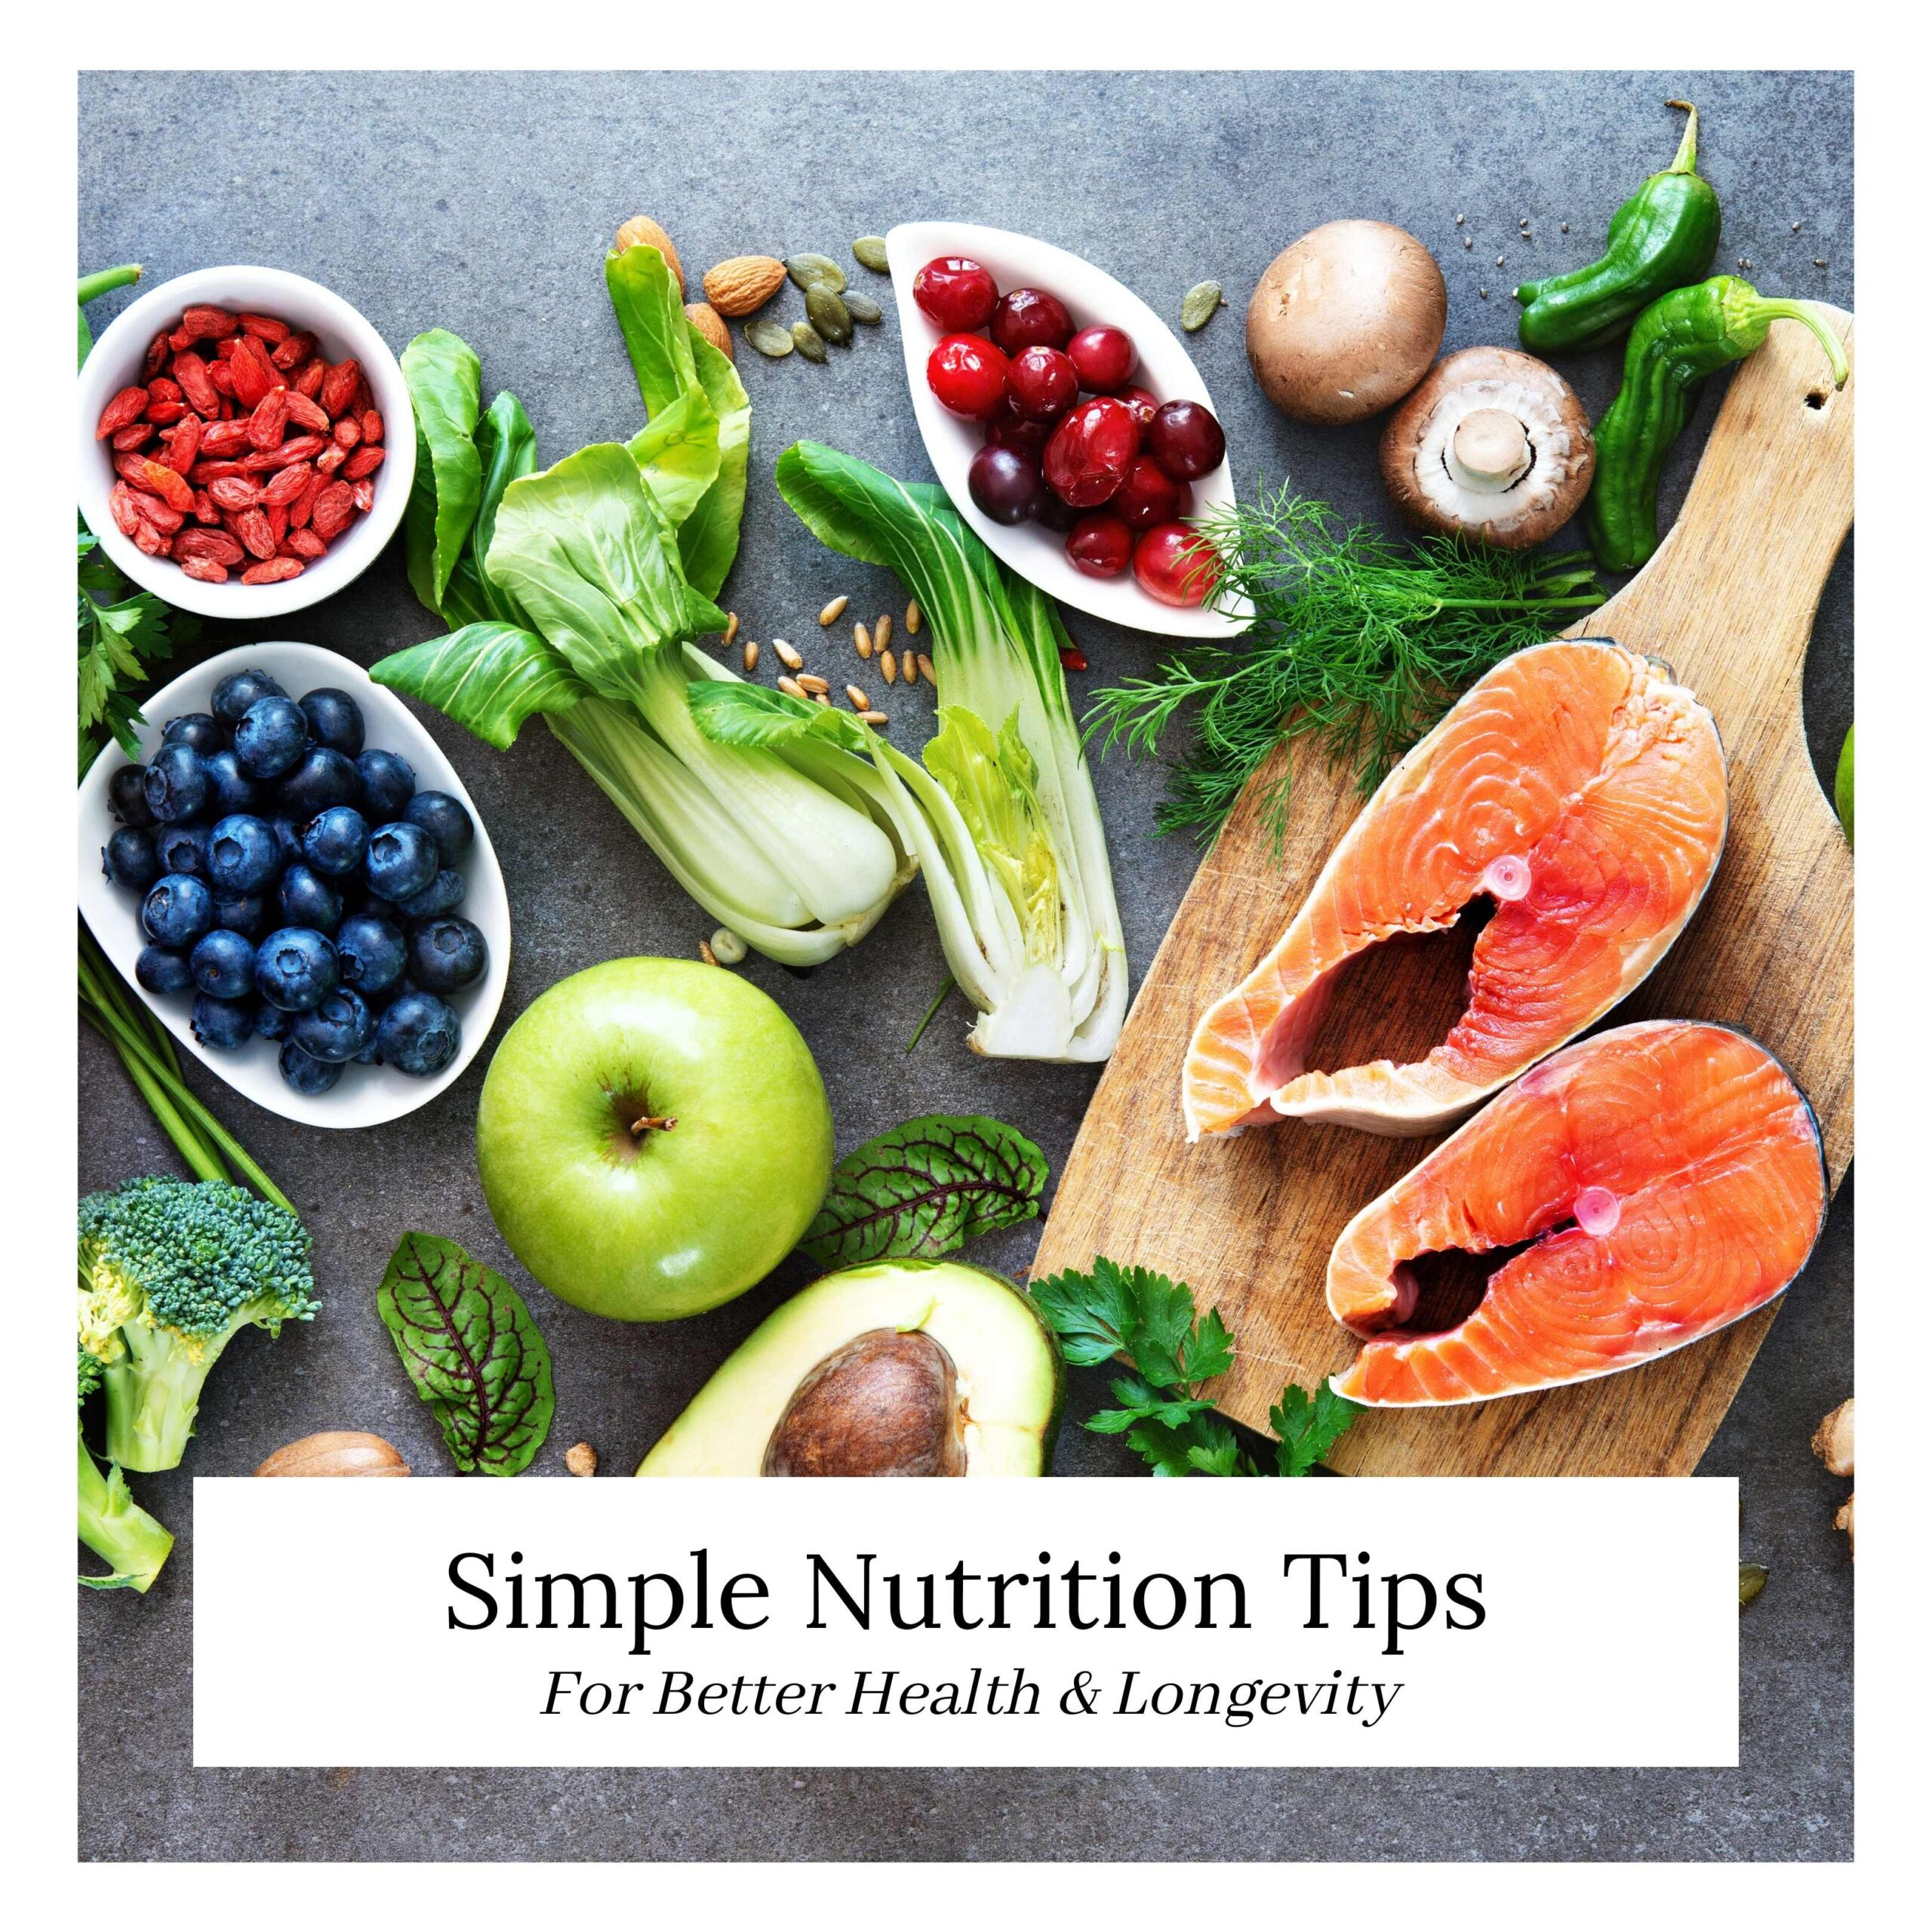 Nutrition tips for longevity and health, nutrition, the healthy life foundation, nutrition tips